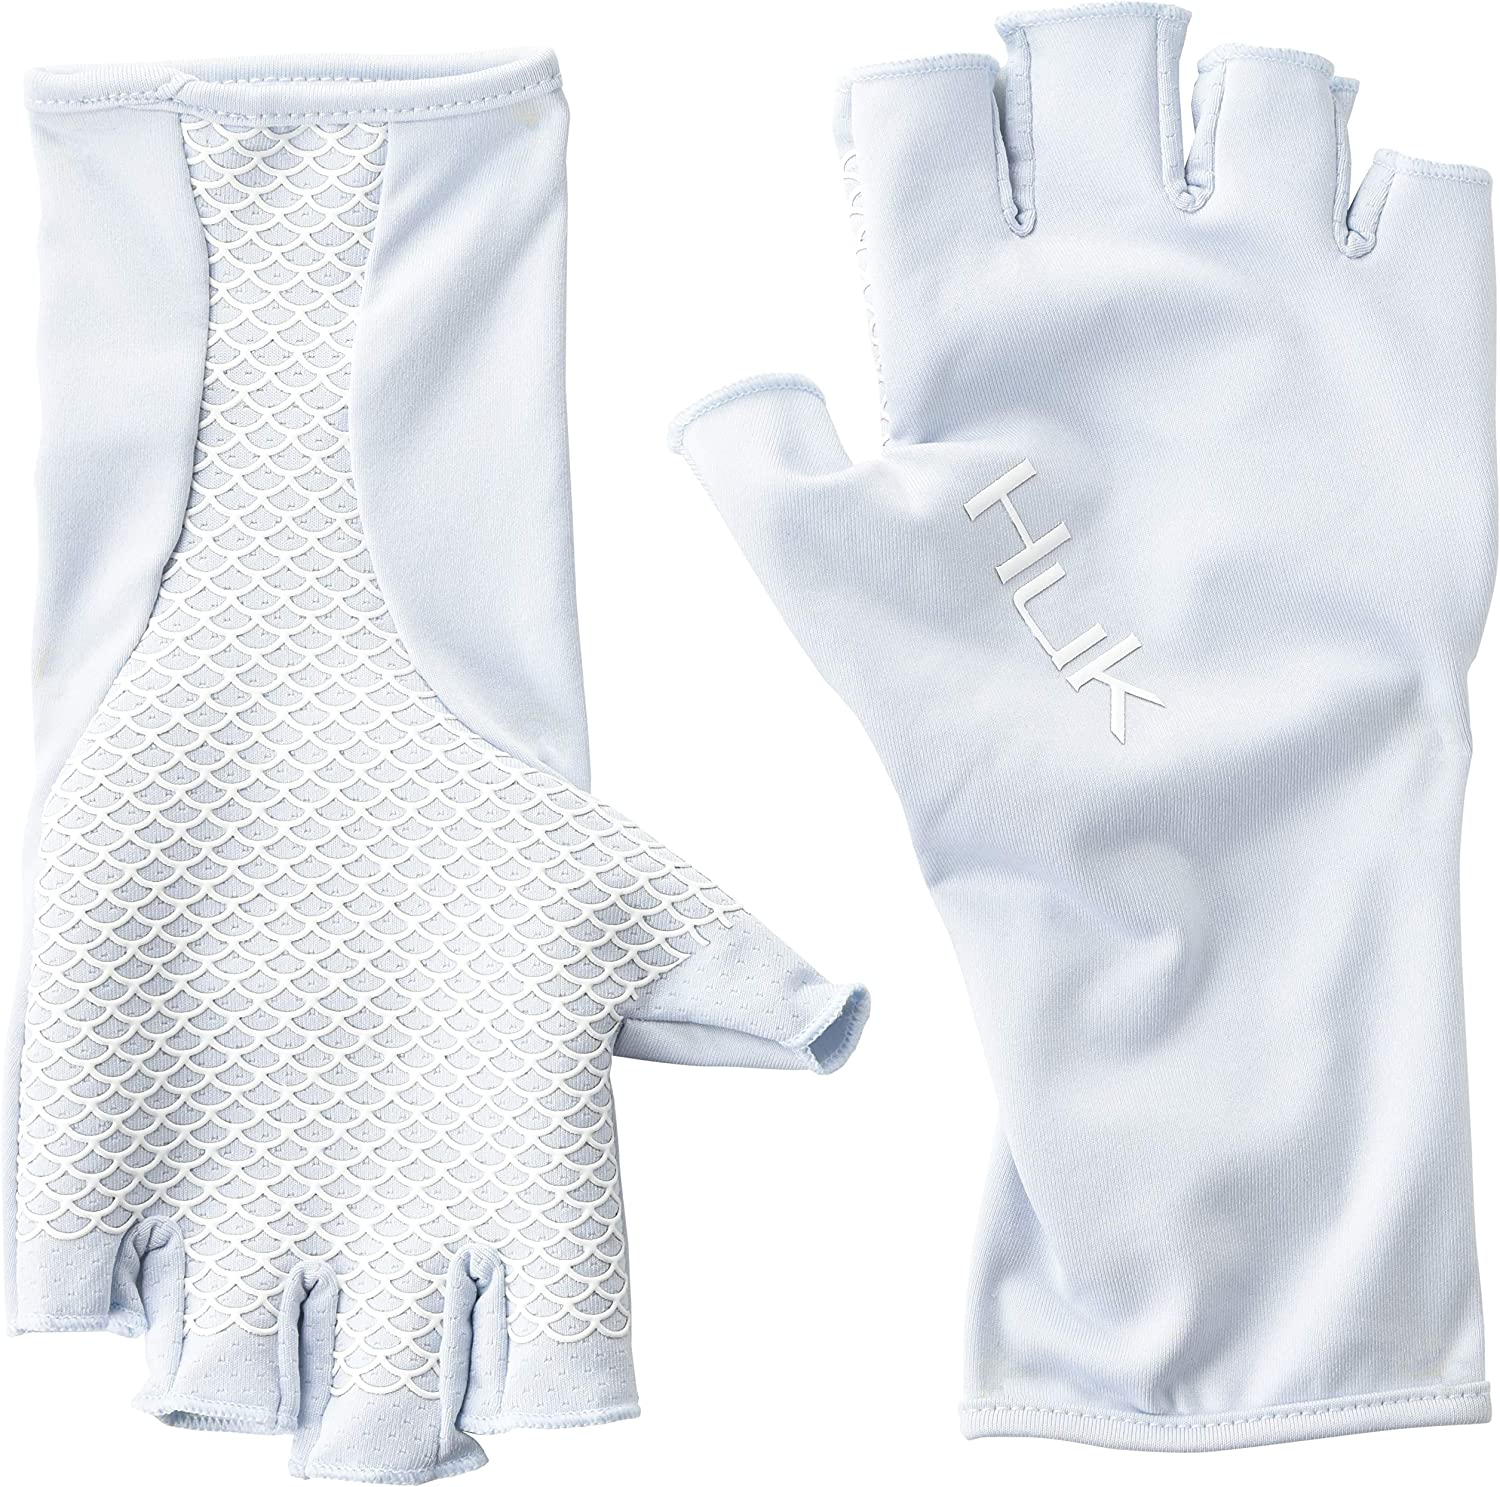 Quick-Drying Fingerless Fishing Gloves with UPF 30 Piece HUK Pursuit Sun Gloves Sun Protection Two